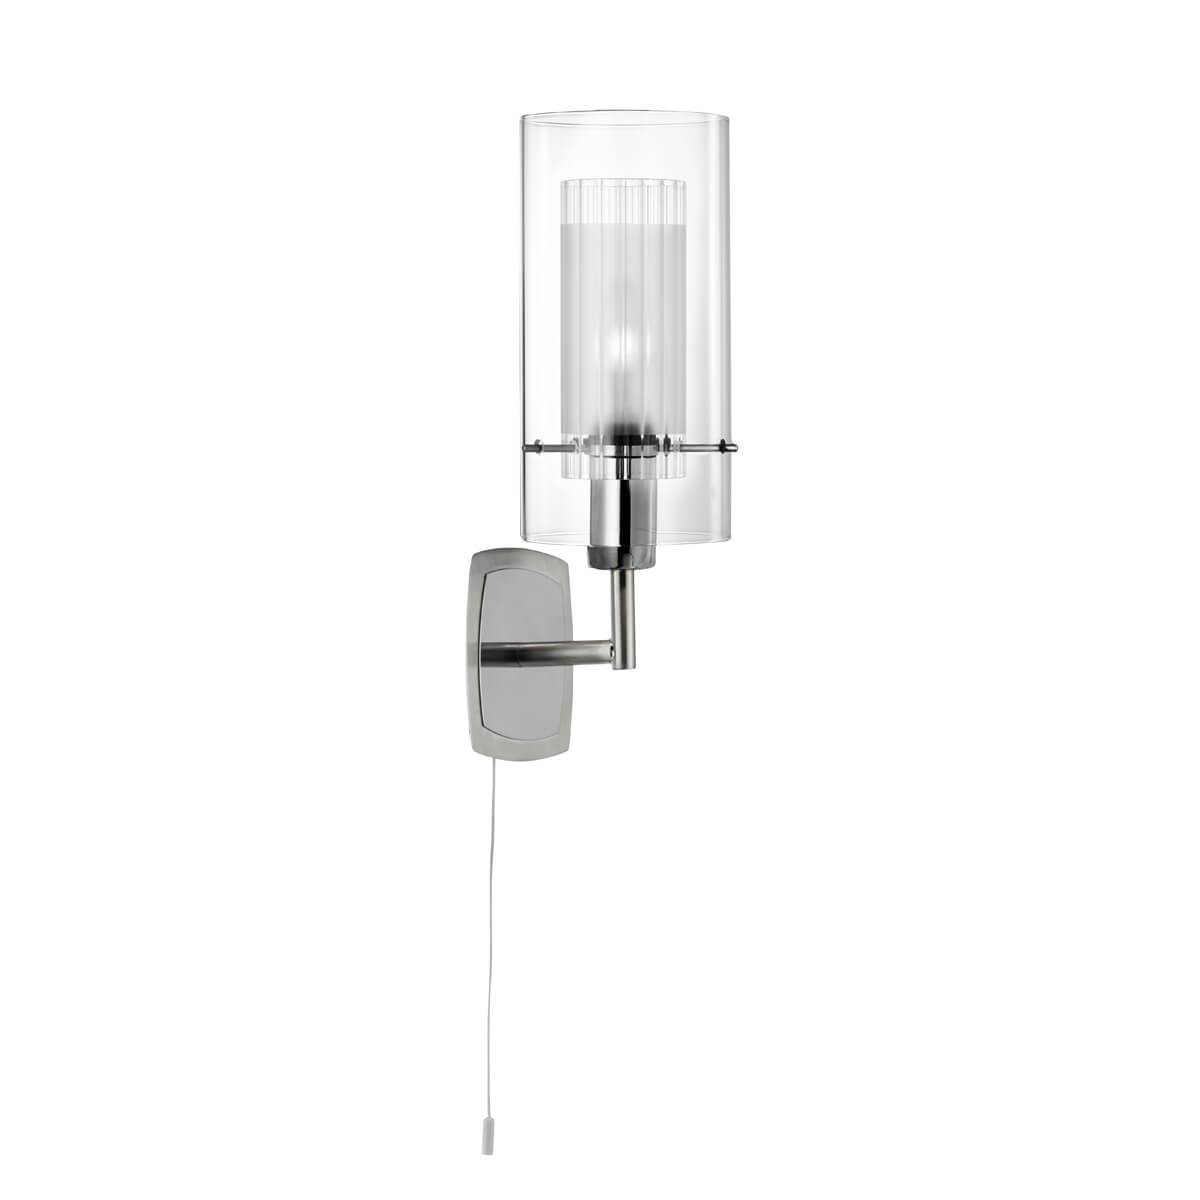 ST2300 -1 DOUBLE GLASS WALL LIGHT - National Lighting